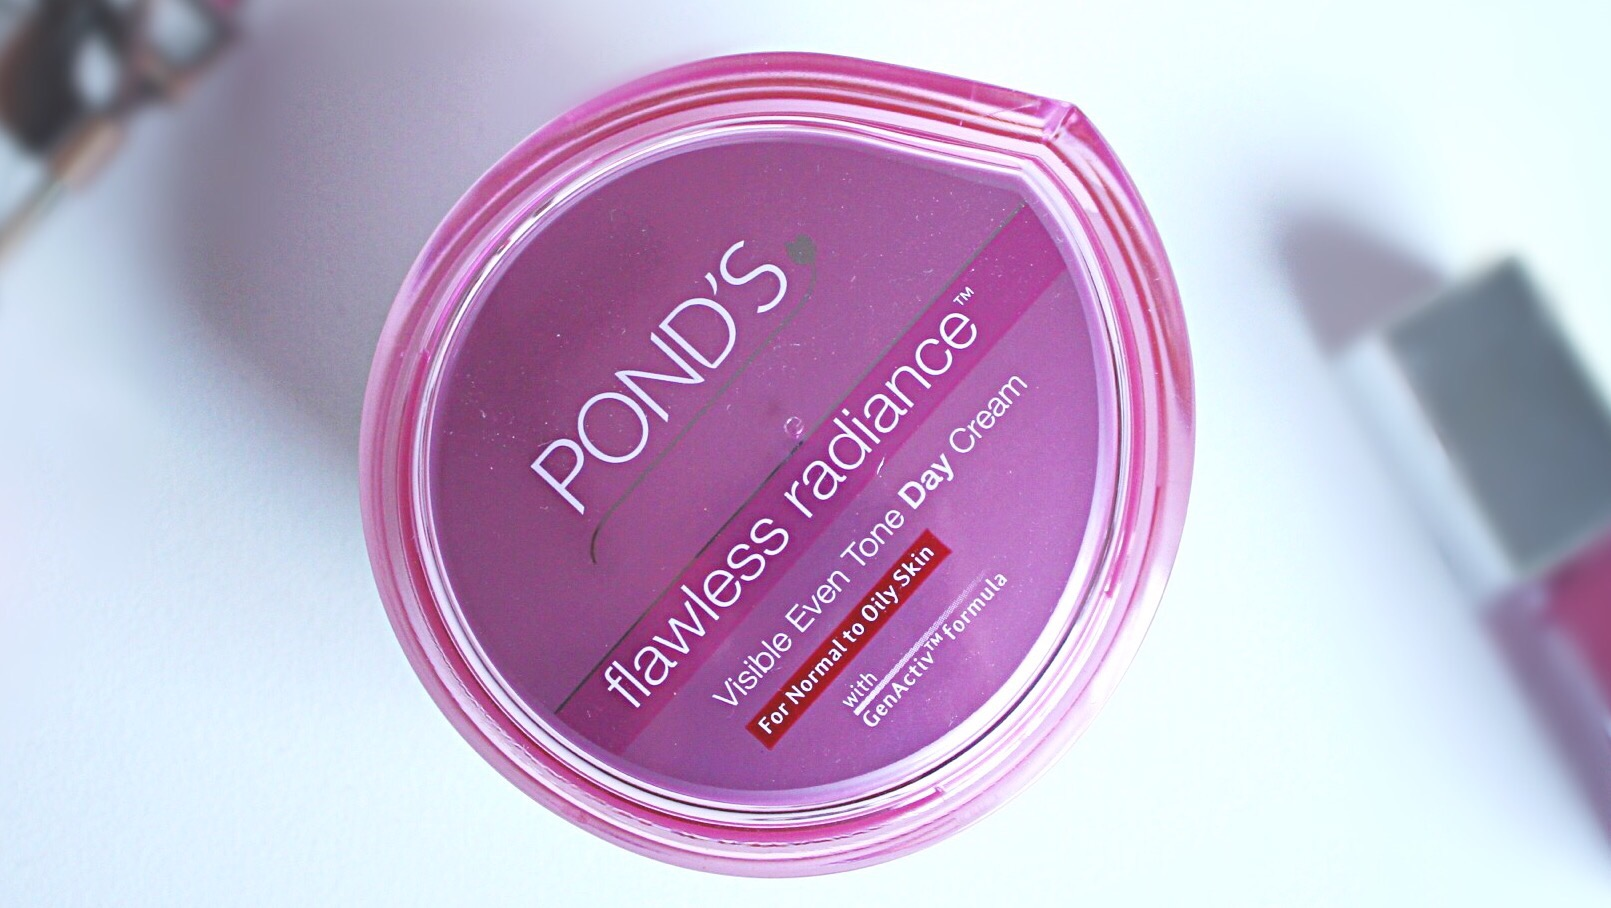 Uncategorized Ponds Flawless White Night Cream 50g During My Test And Review Period Of This Range I Used The Day As A Sub For Primer It Really Did Wonderful Job In Keeping Skin Moisturized